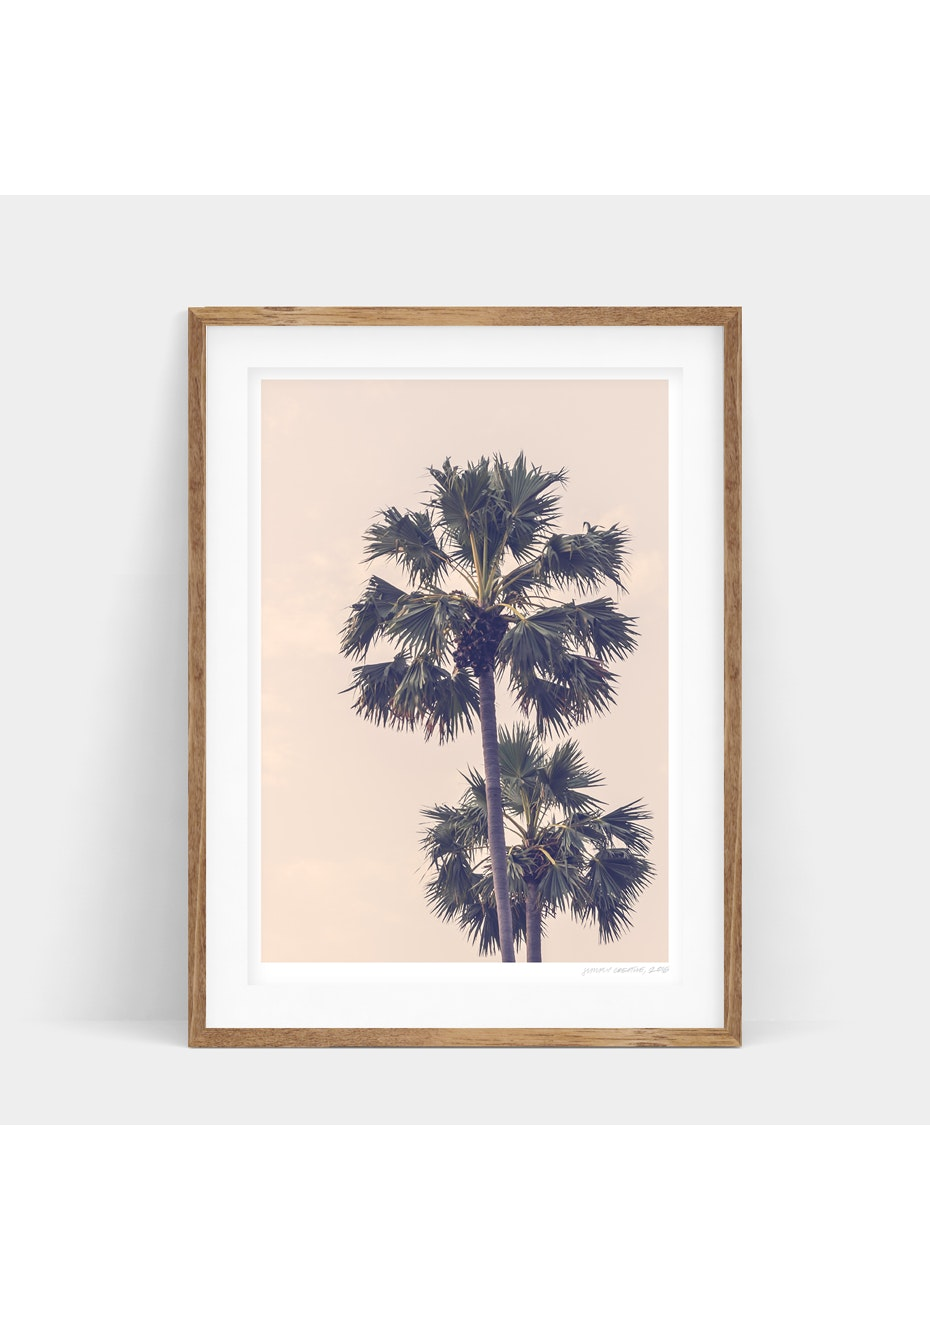 Simply Creative - Peach Palms - A4 Monochrome Print